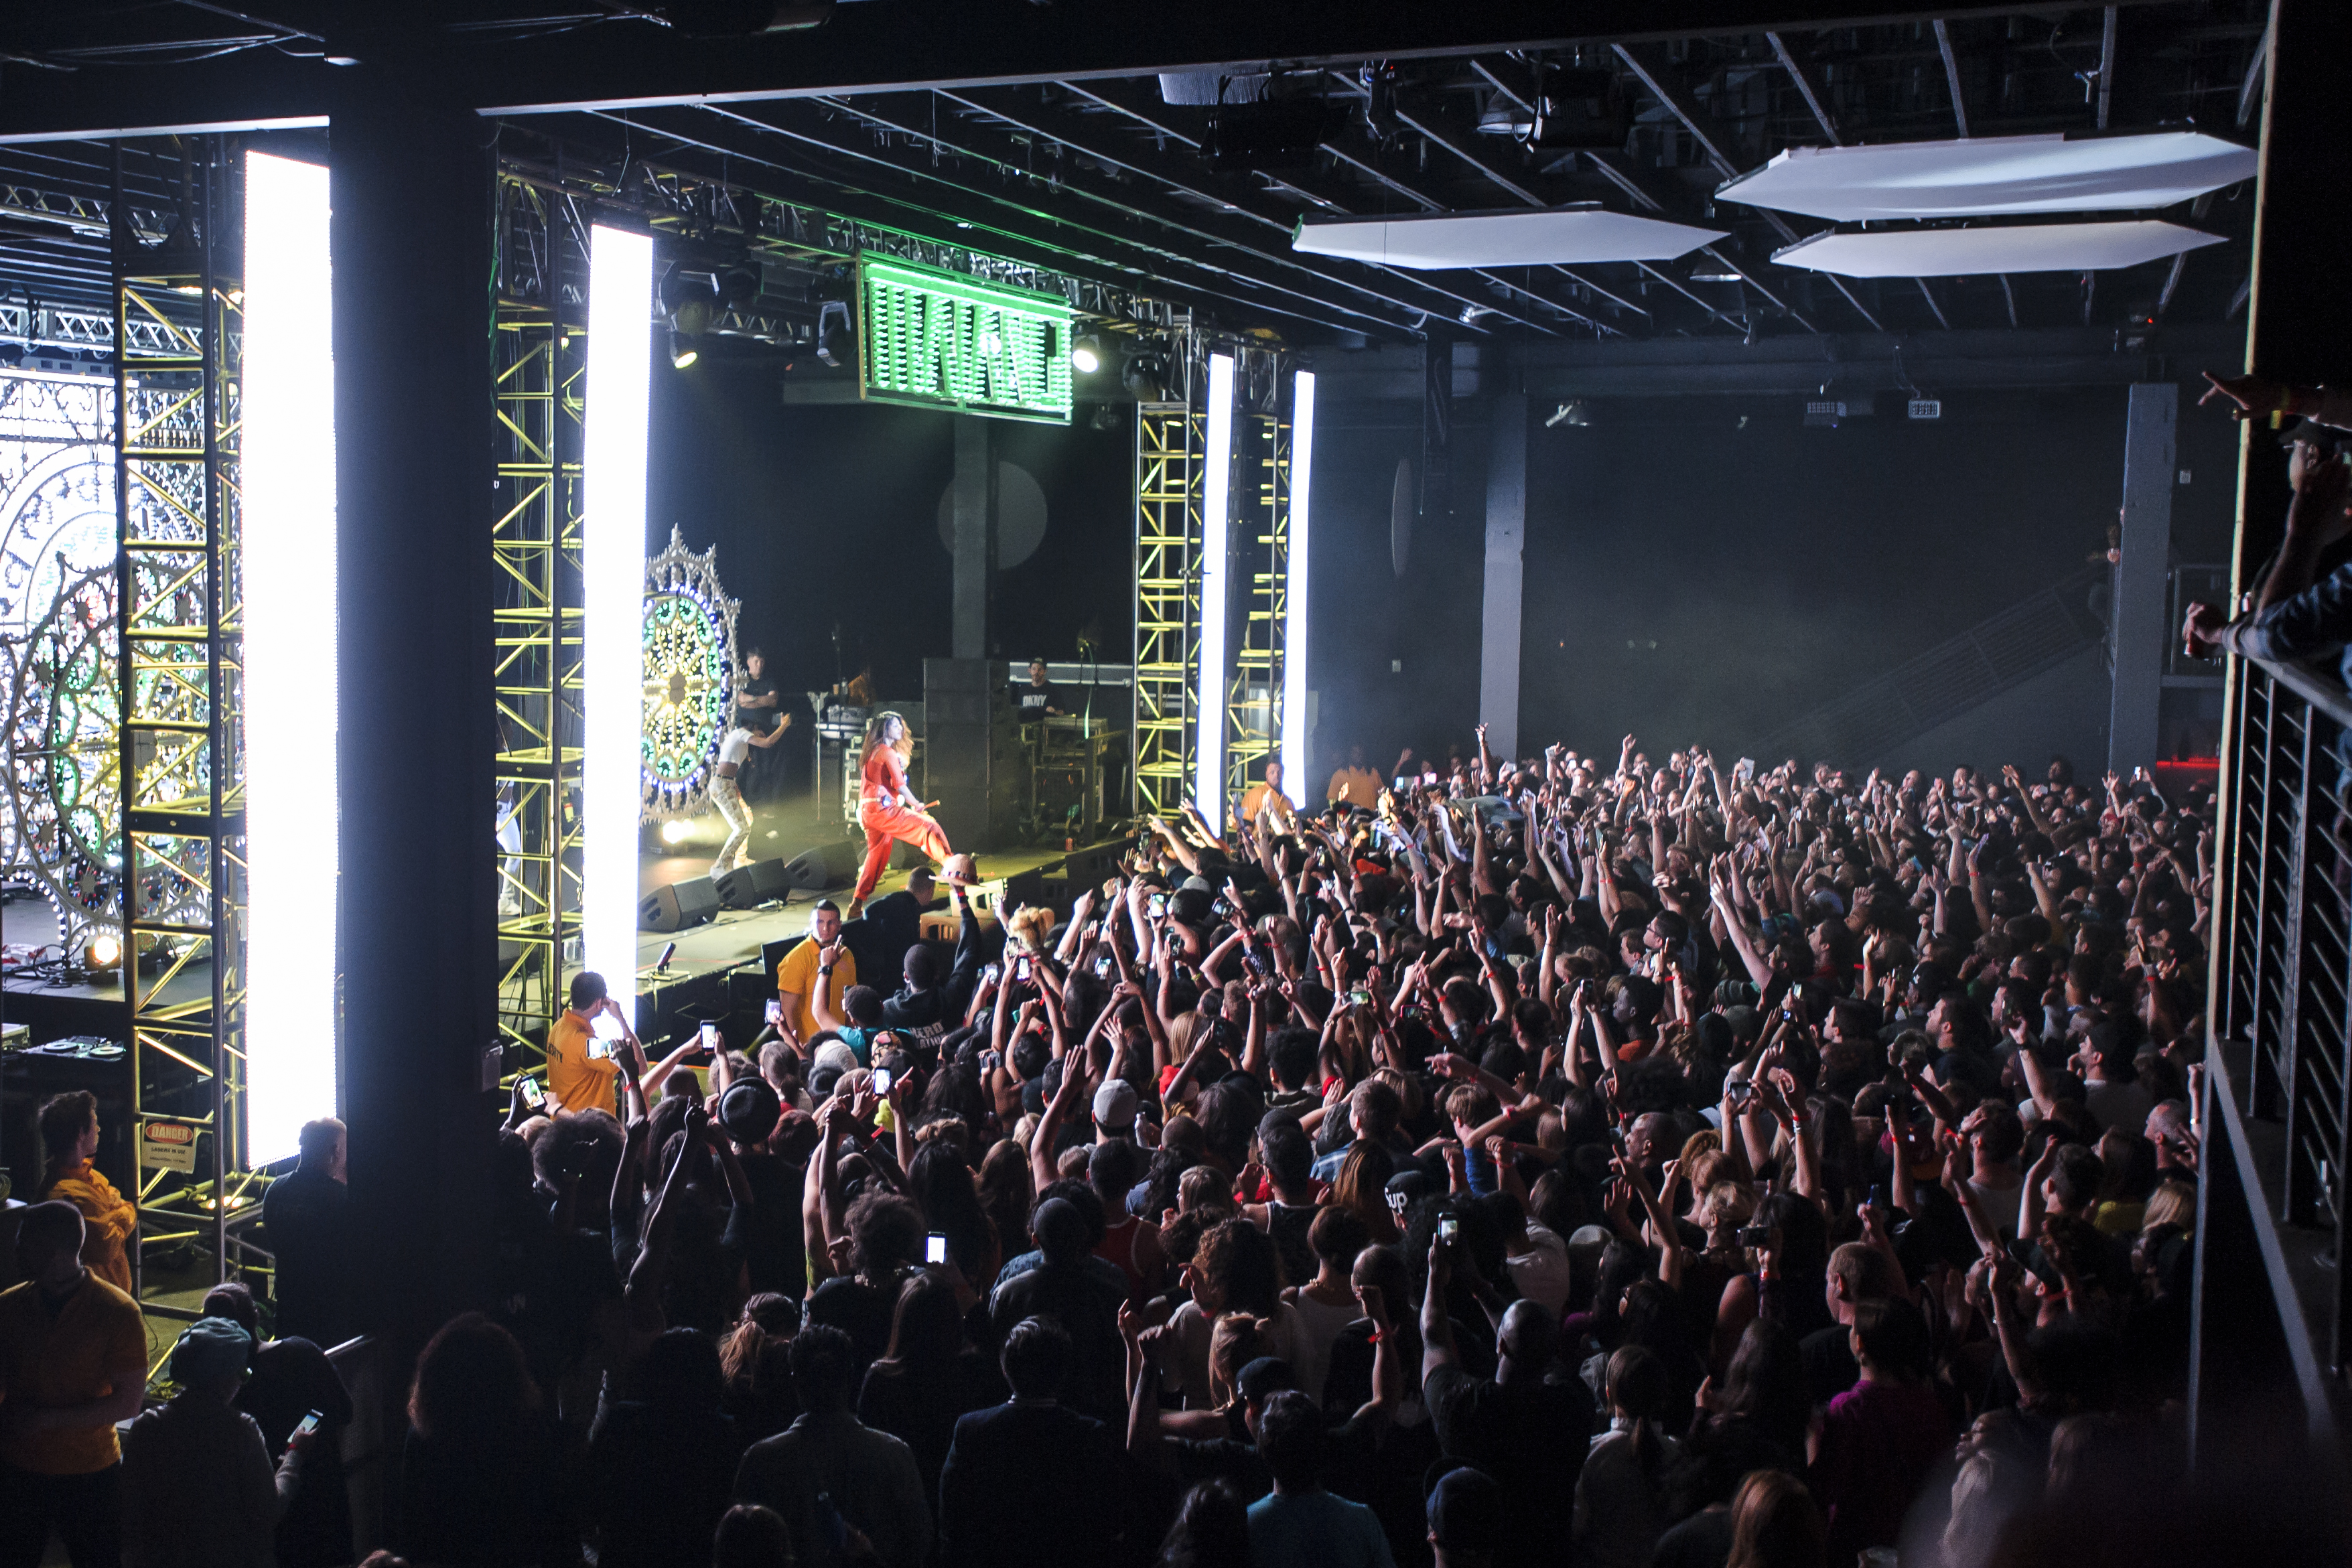 M.I.A. Performs at Echostage in Washington, D.C.